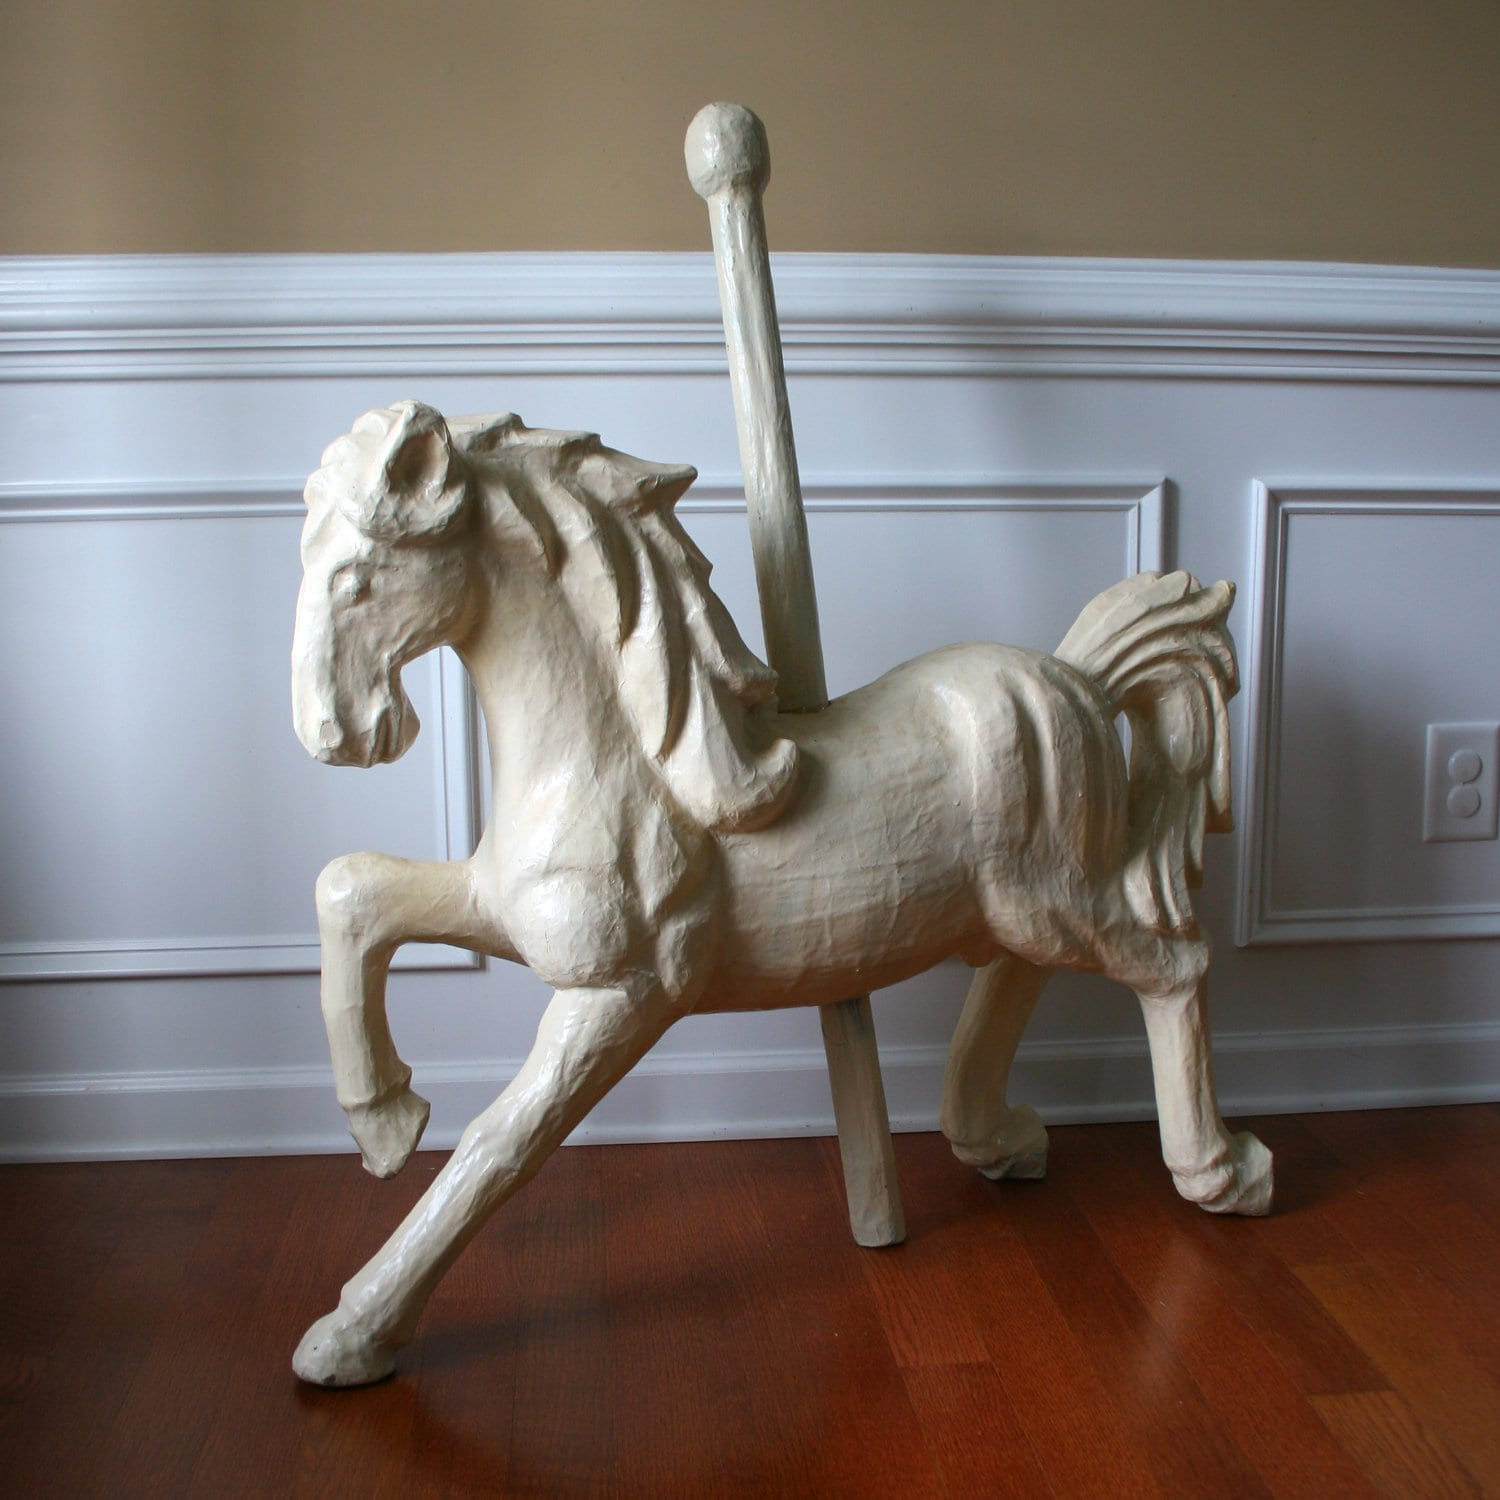 Paper mache carousel horse unique home decor art by for Unusual home accessories